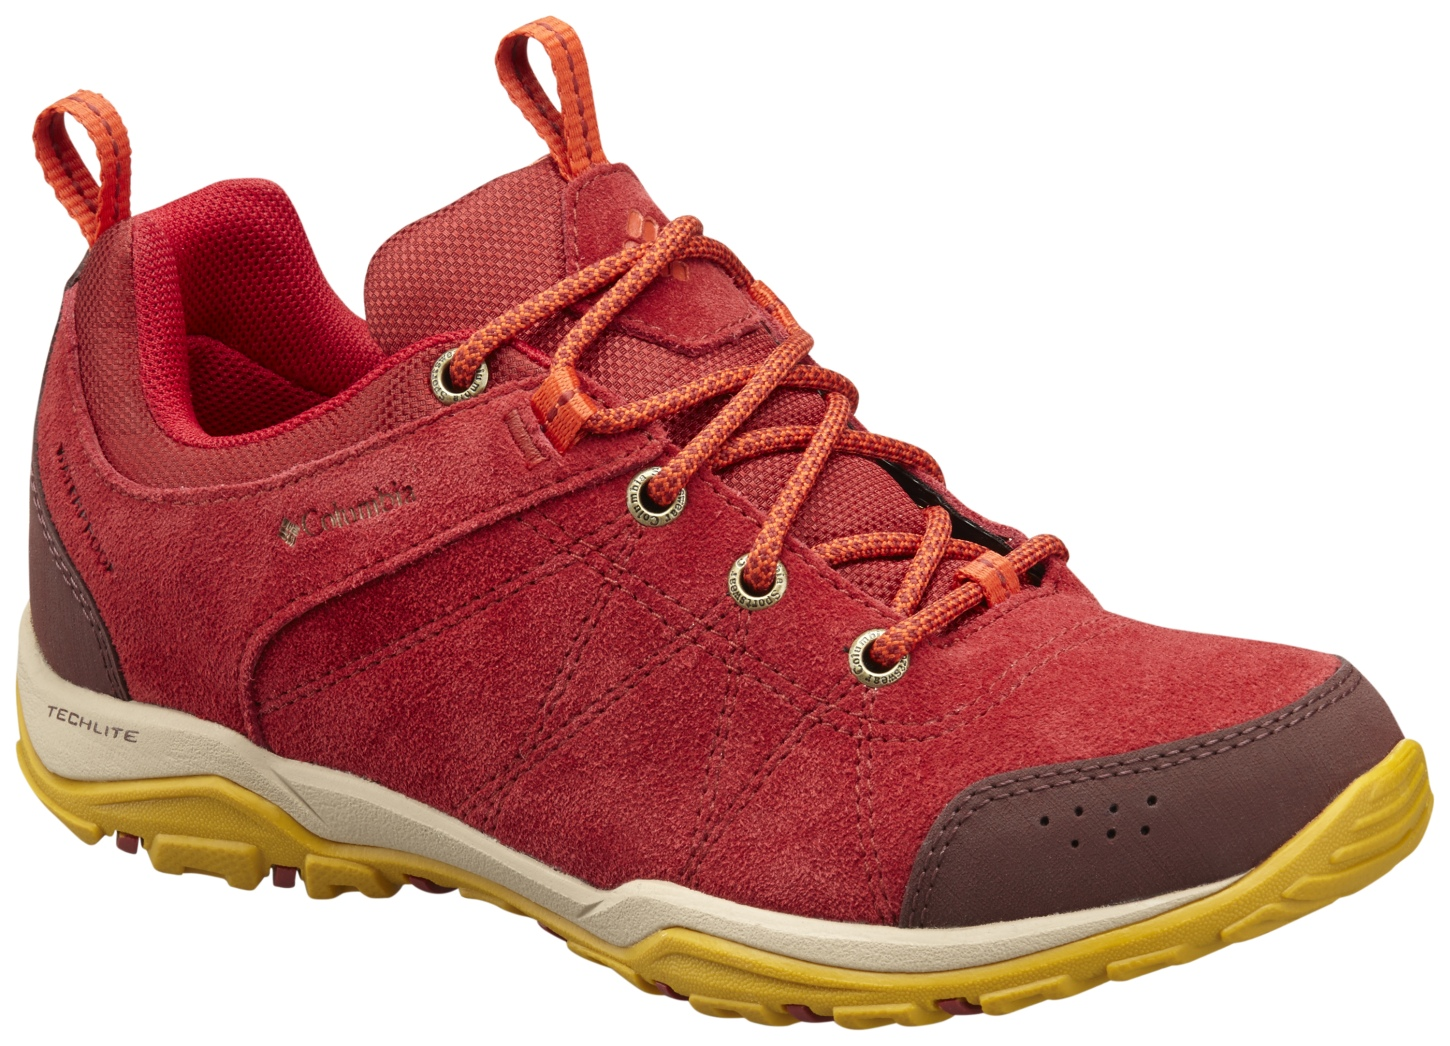 Columbia Women's Fire Venture Low Waterproof Shoes Red Dahlia, Bonfire-30